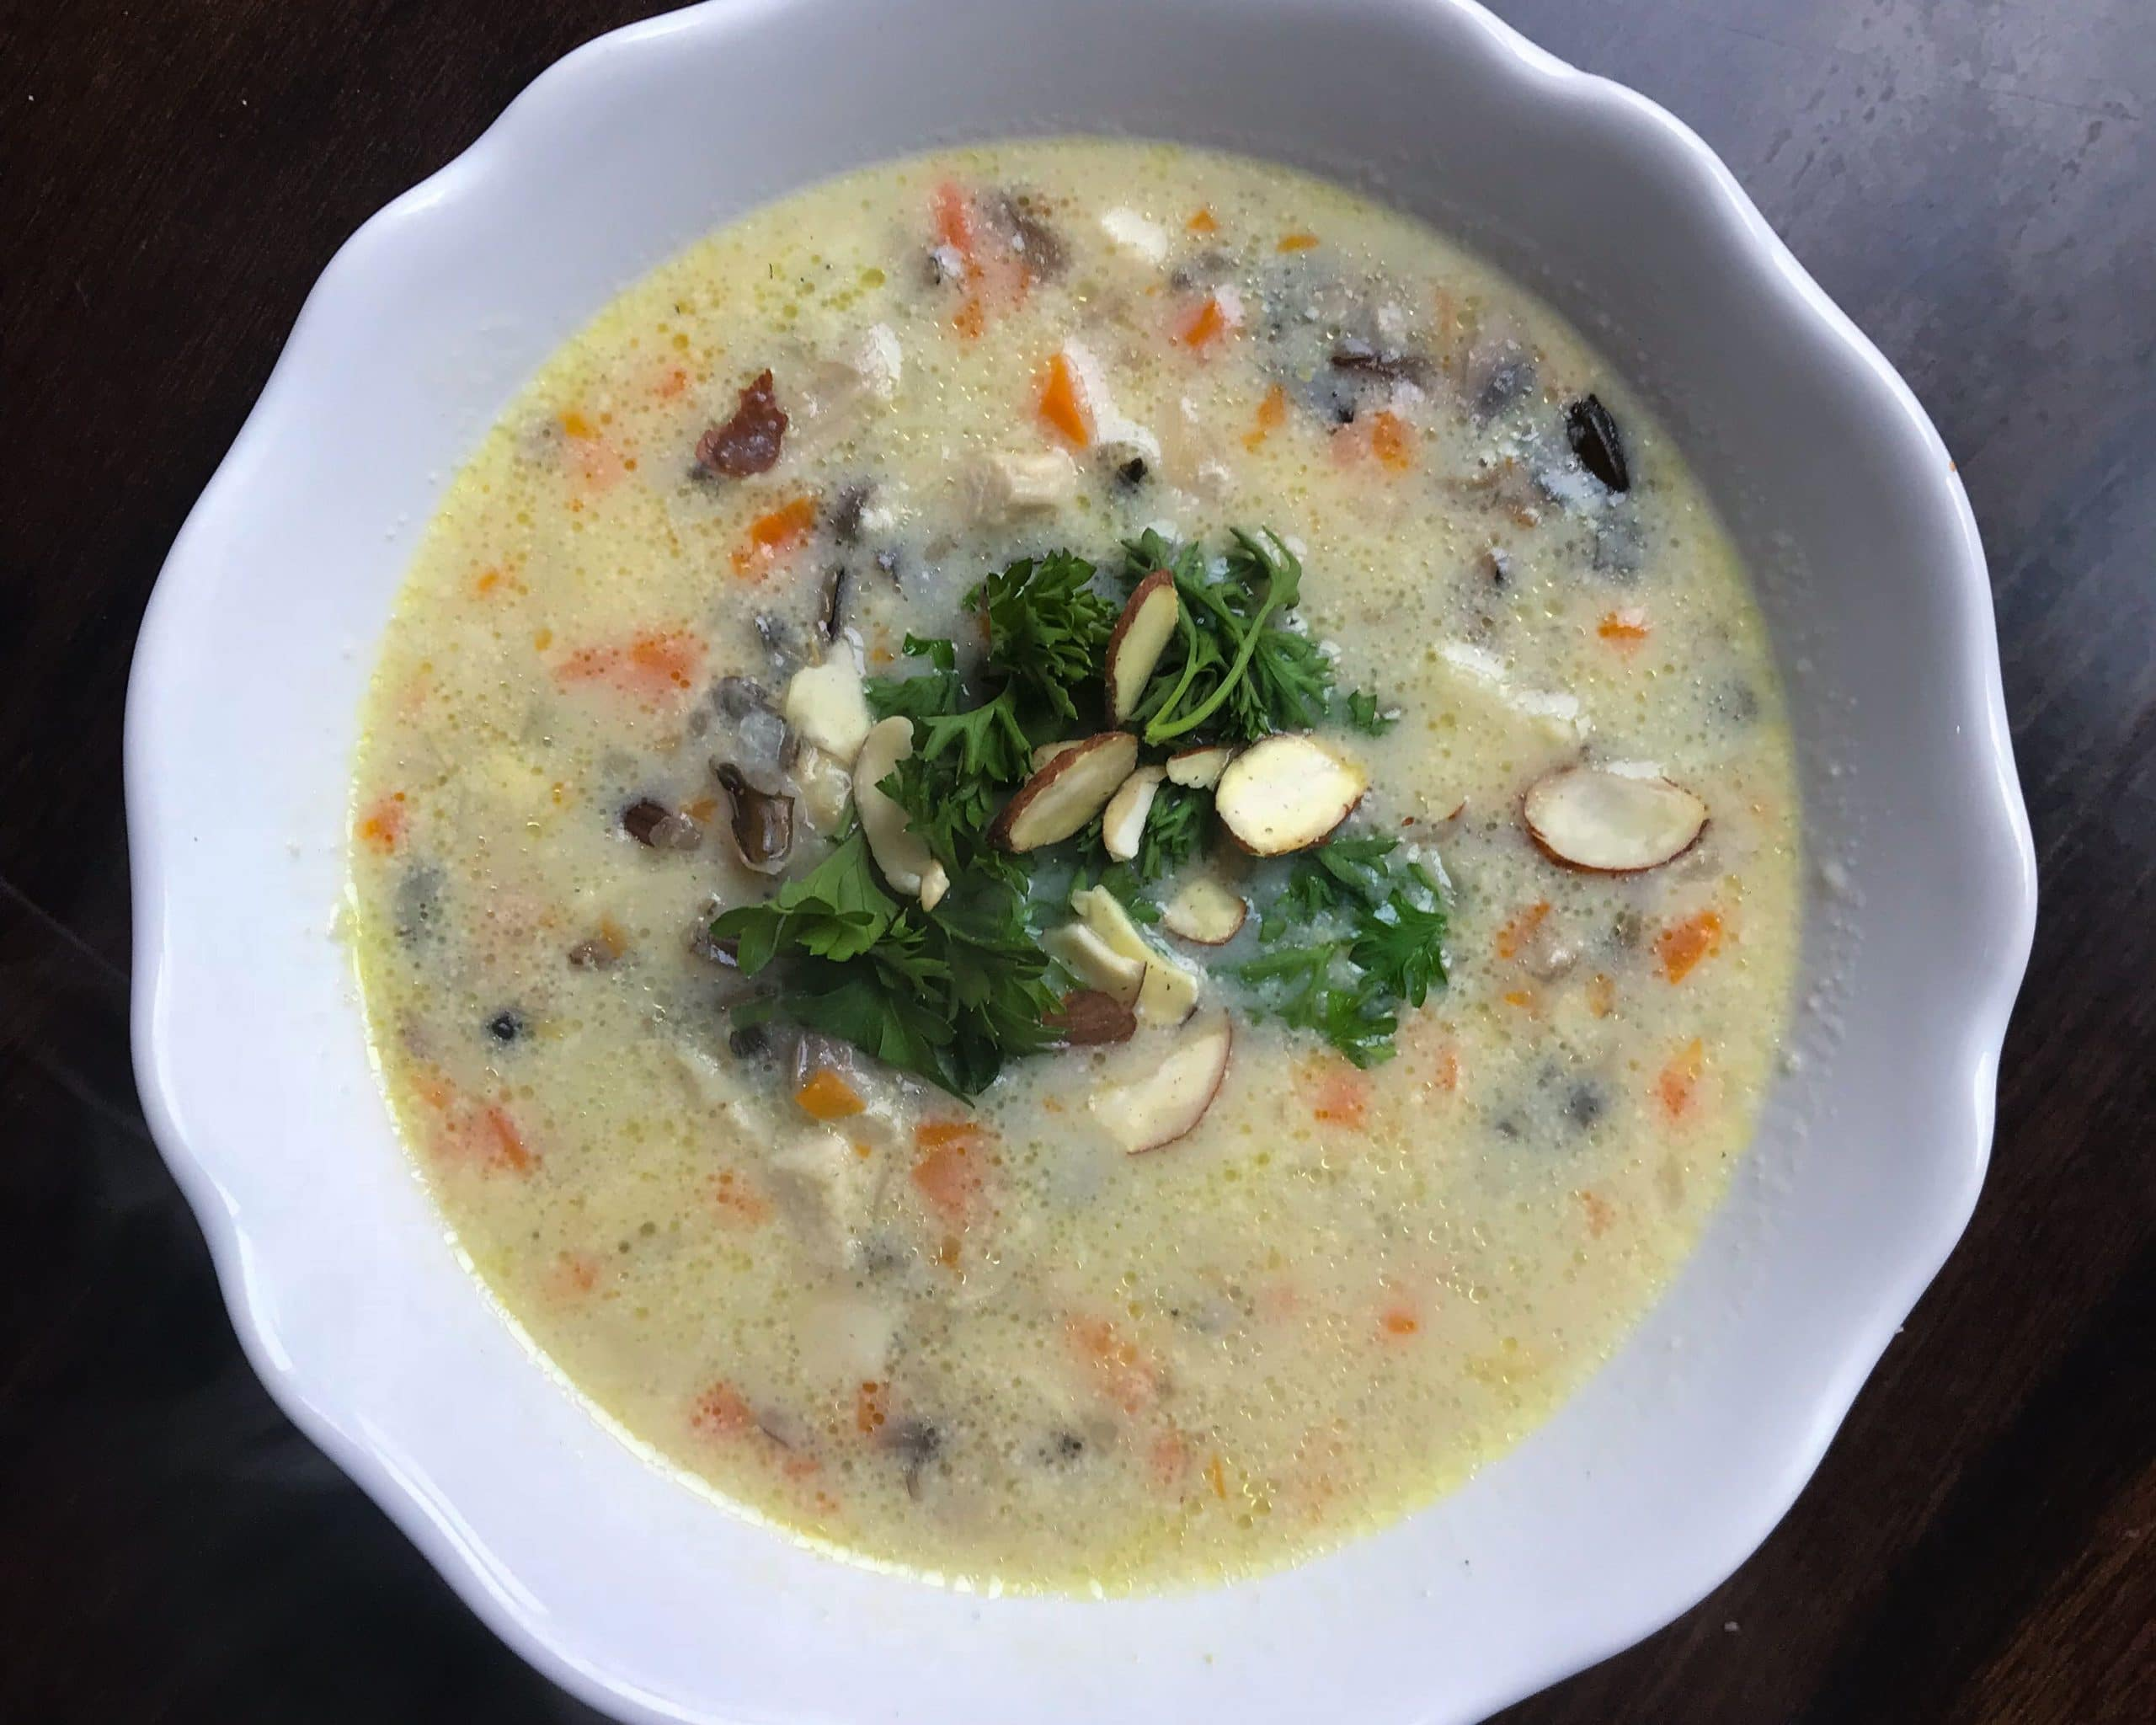 Creamy chicken wild rice soup. Kathleenscravings.com